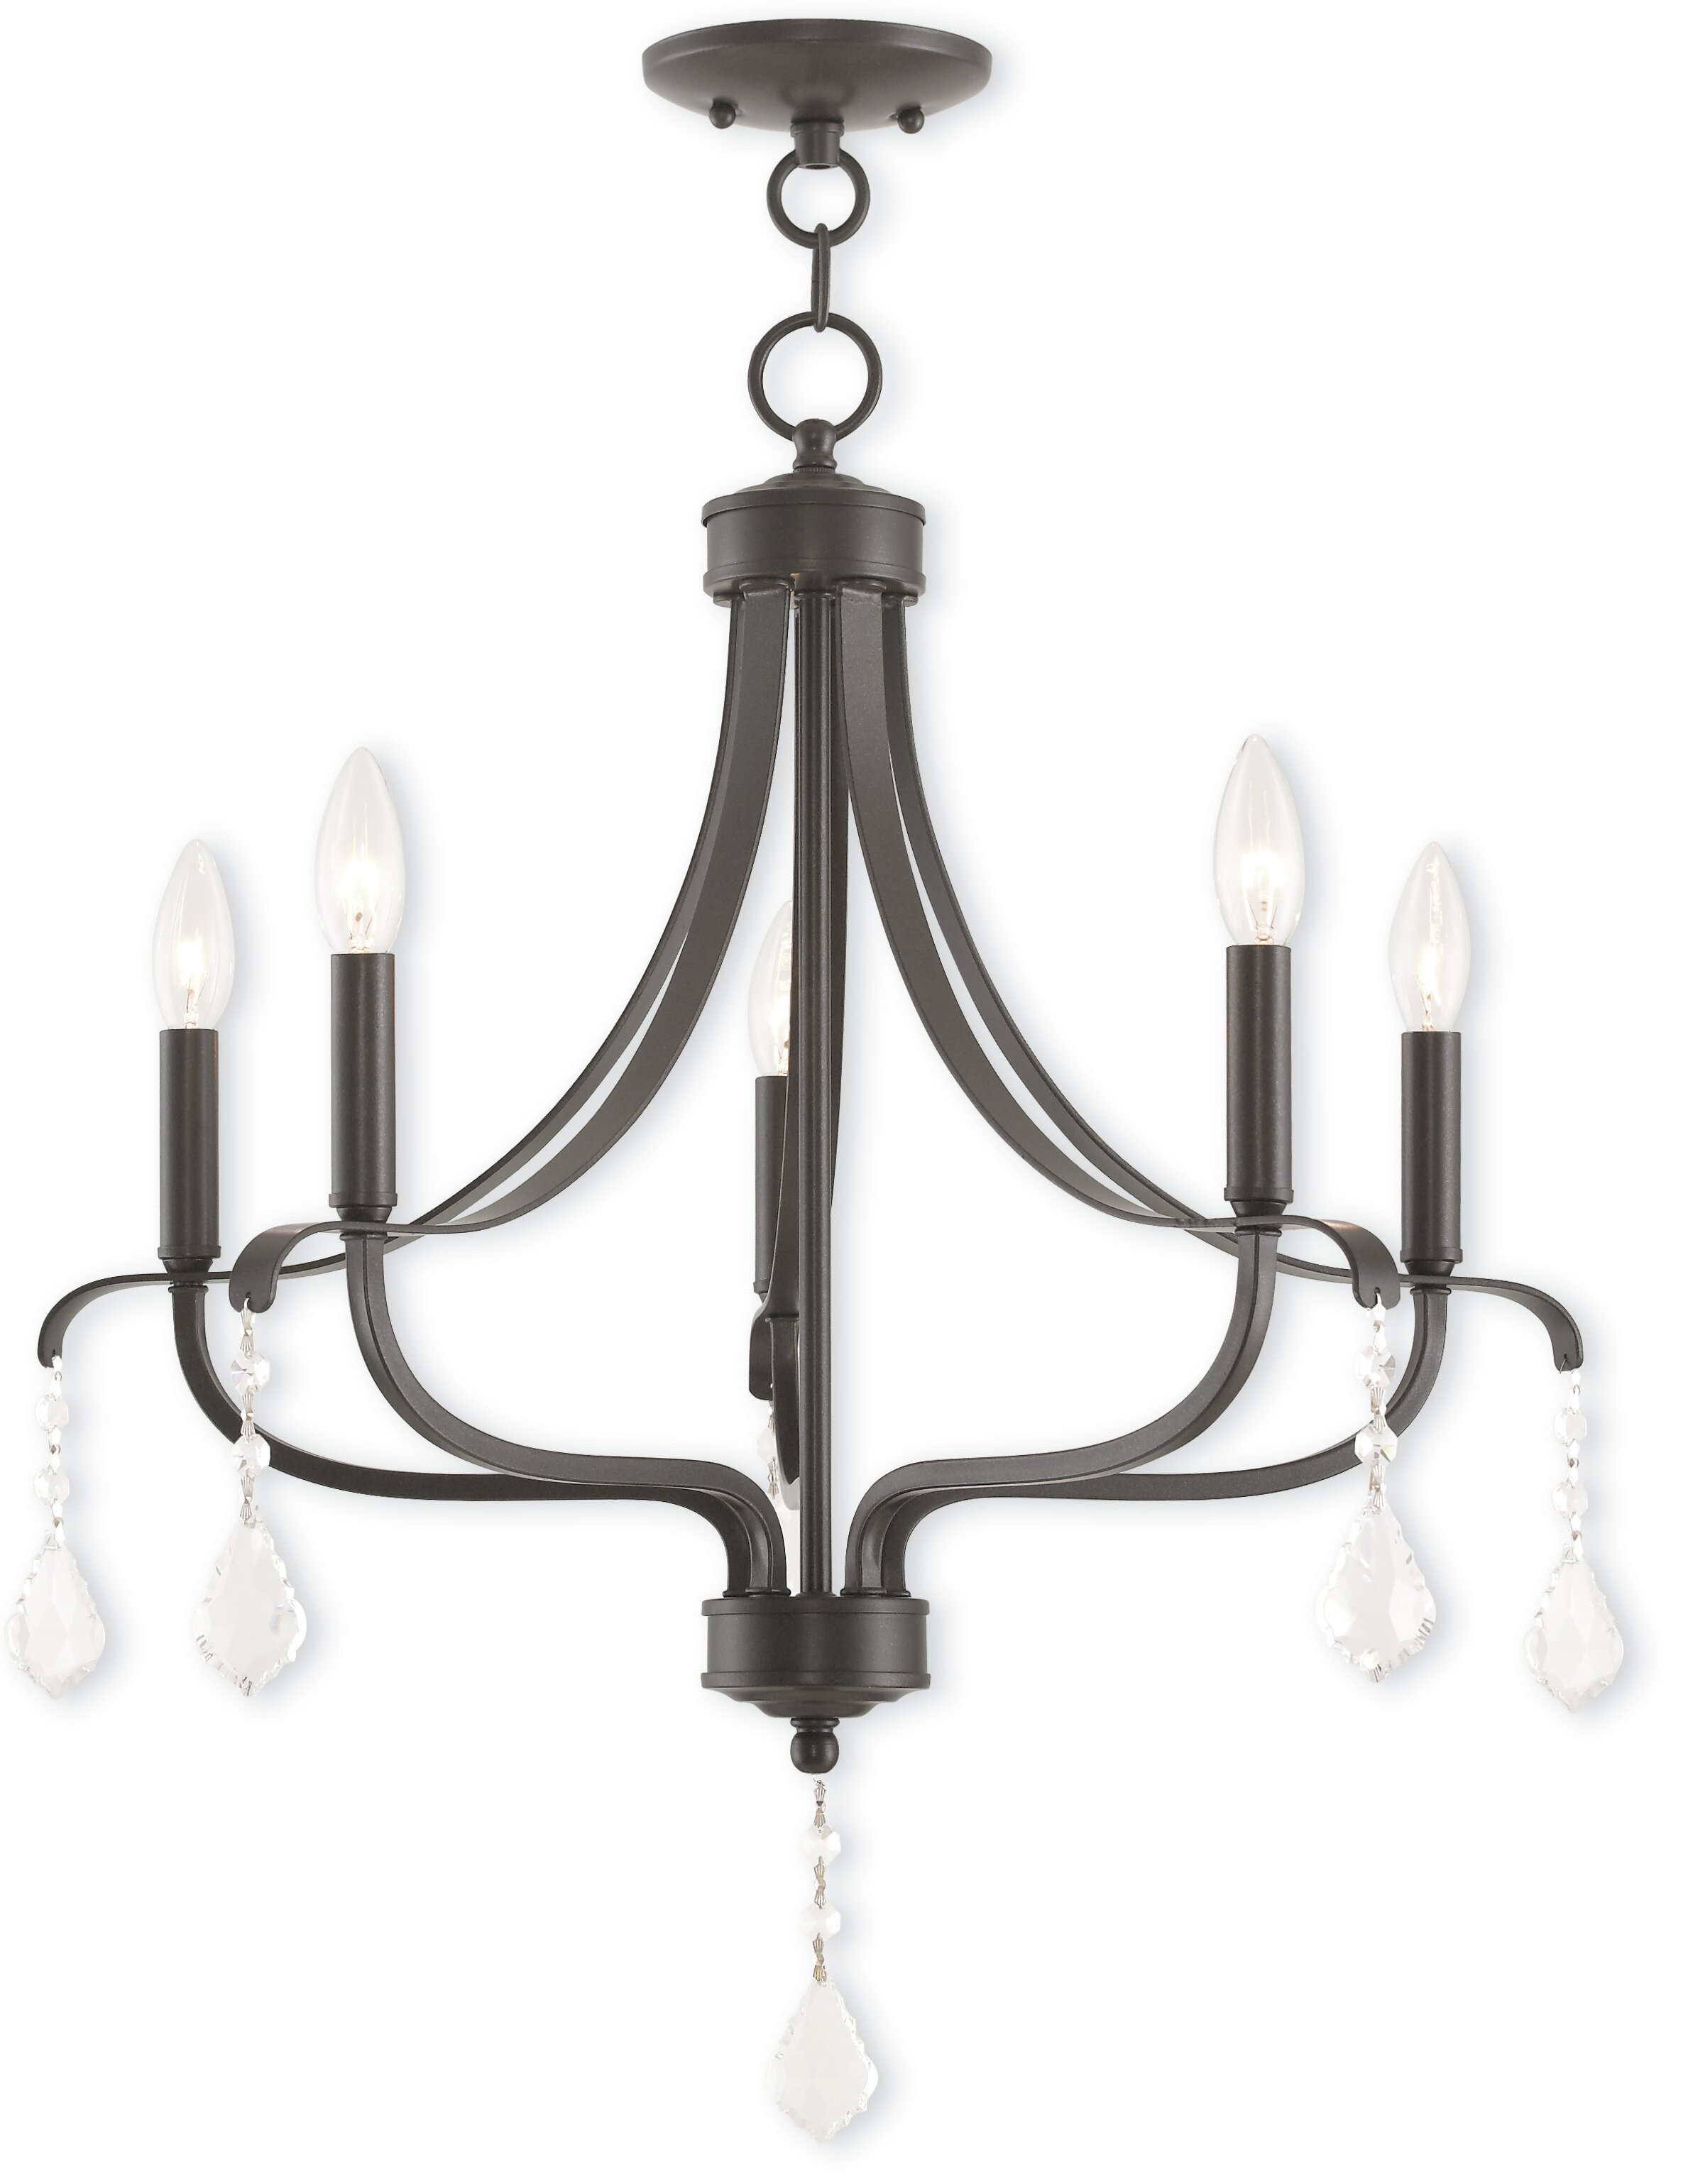 Willa Arlo Interiors Etienne 5 Light Candle Style Chandelier Reviews